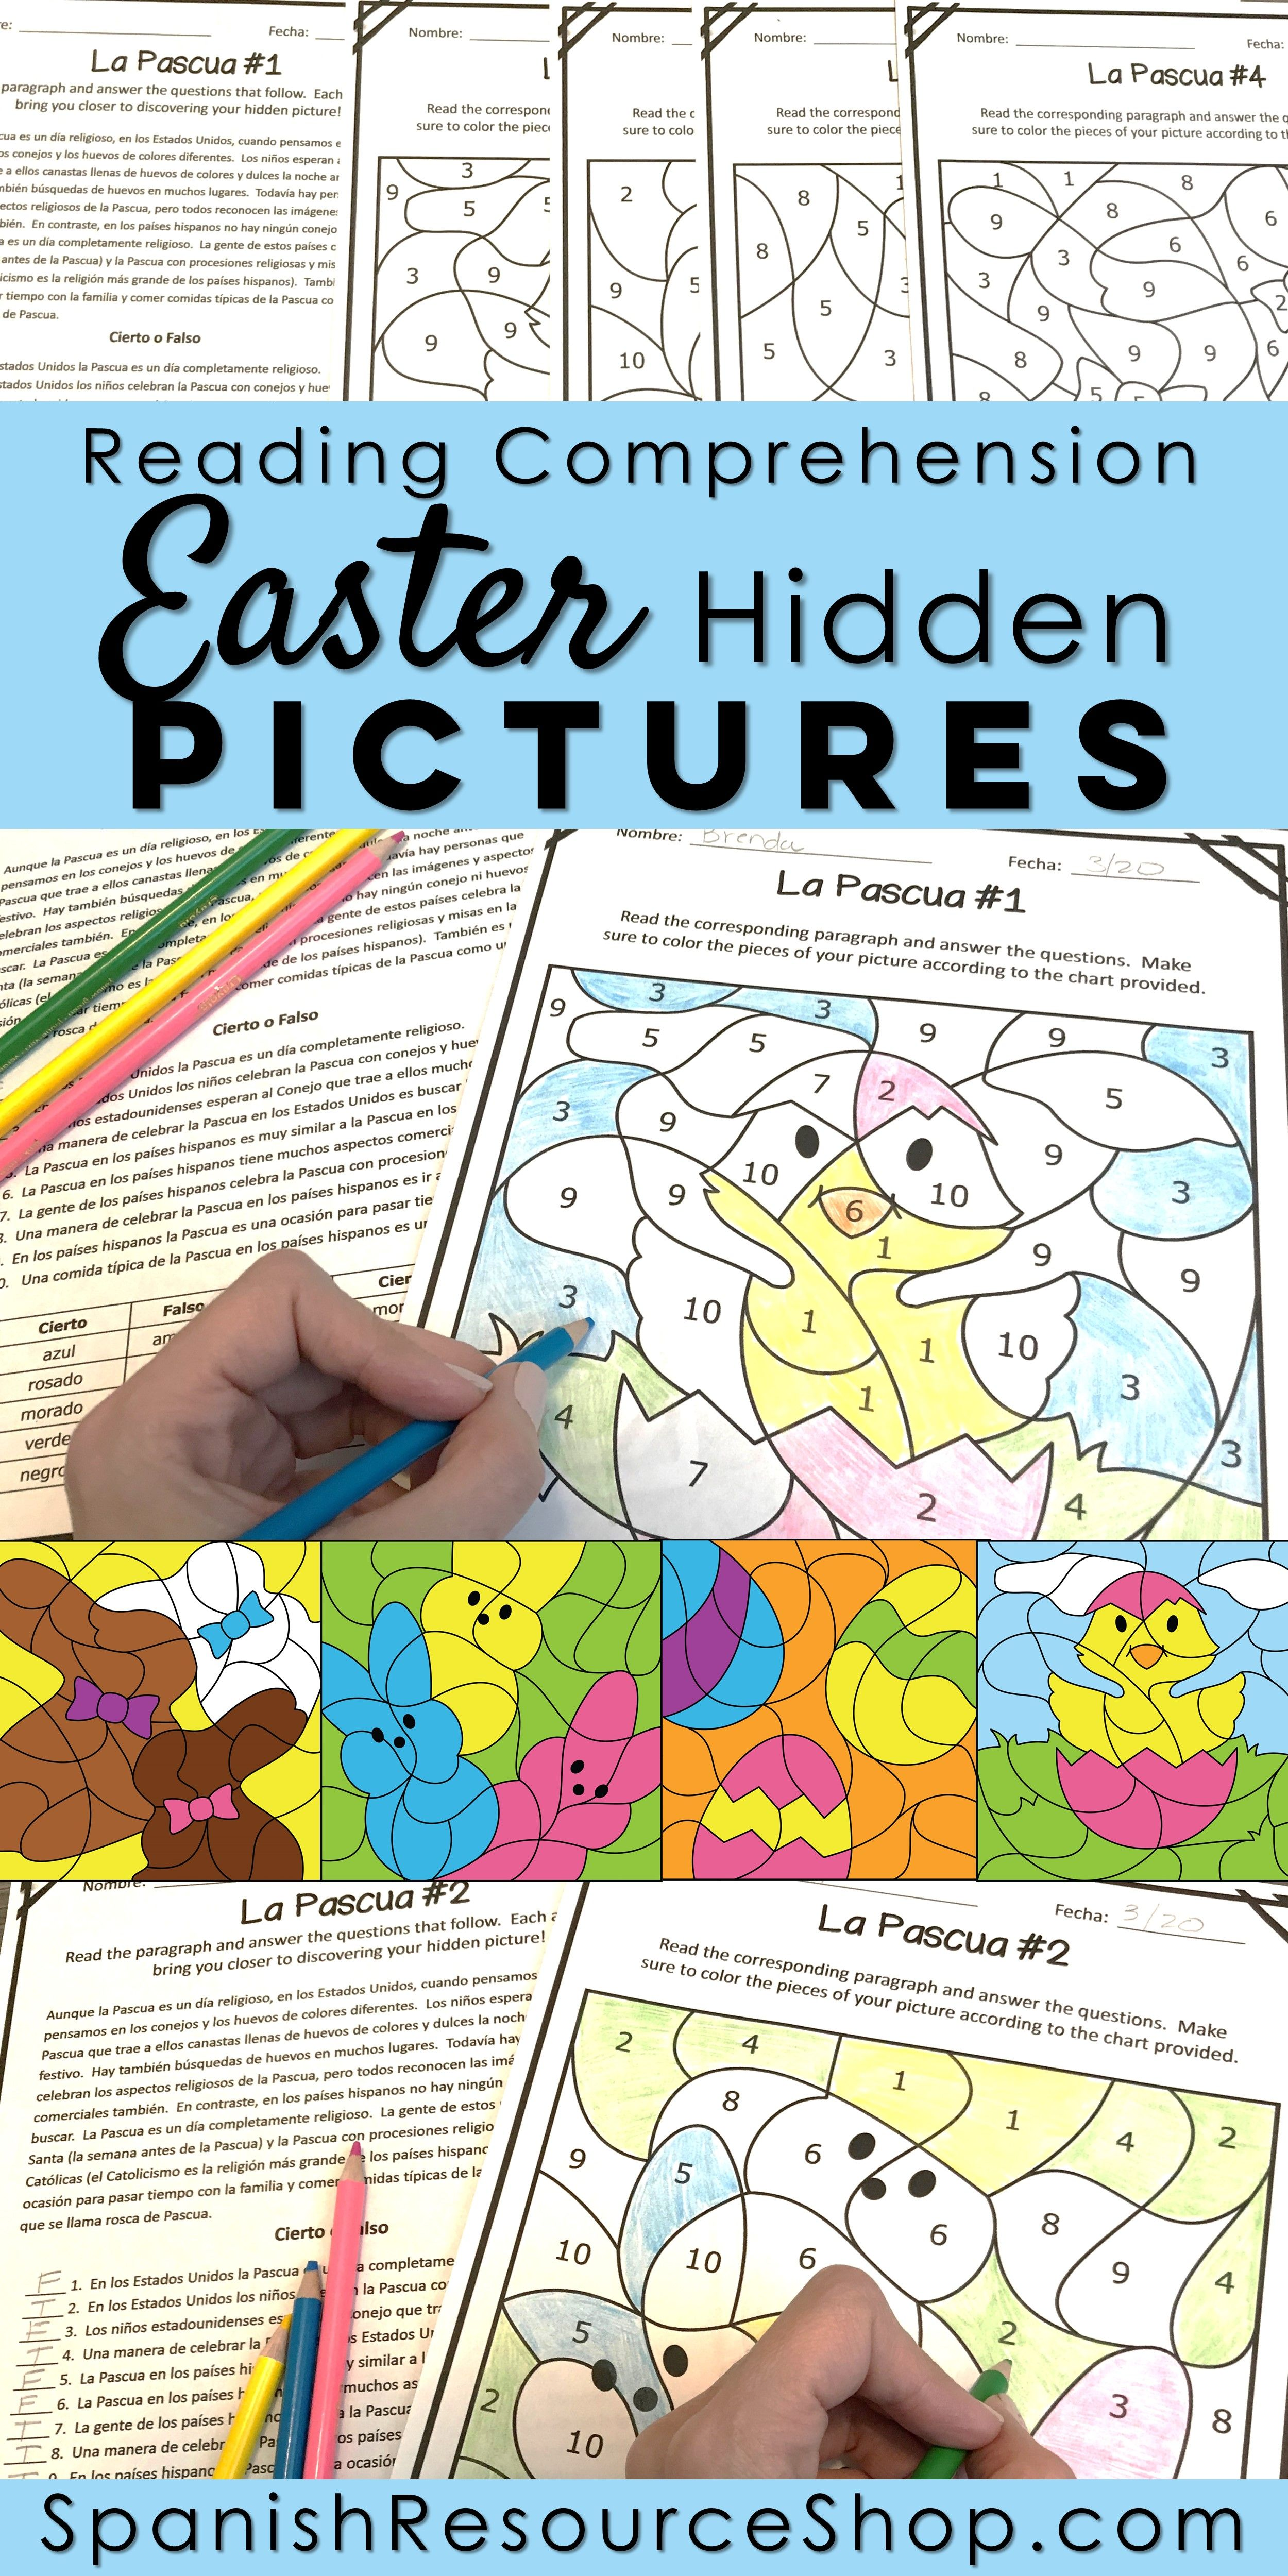 Spanish Easter Reading Comprehension Hidden Pictures